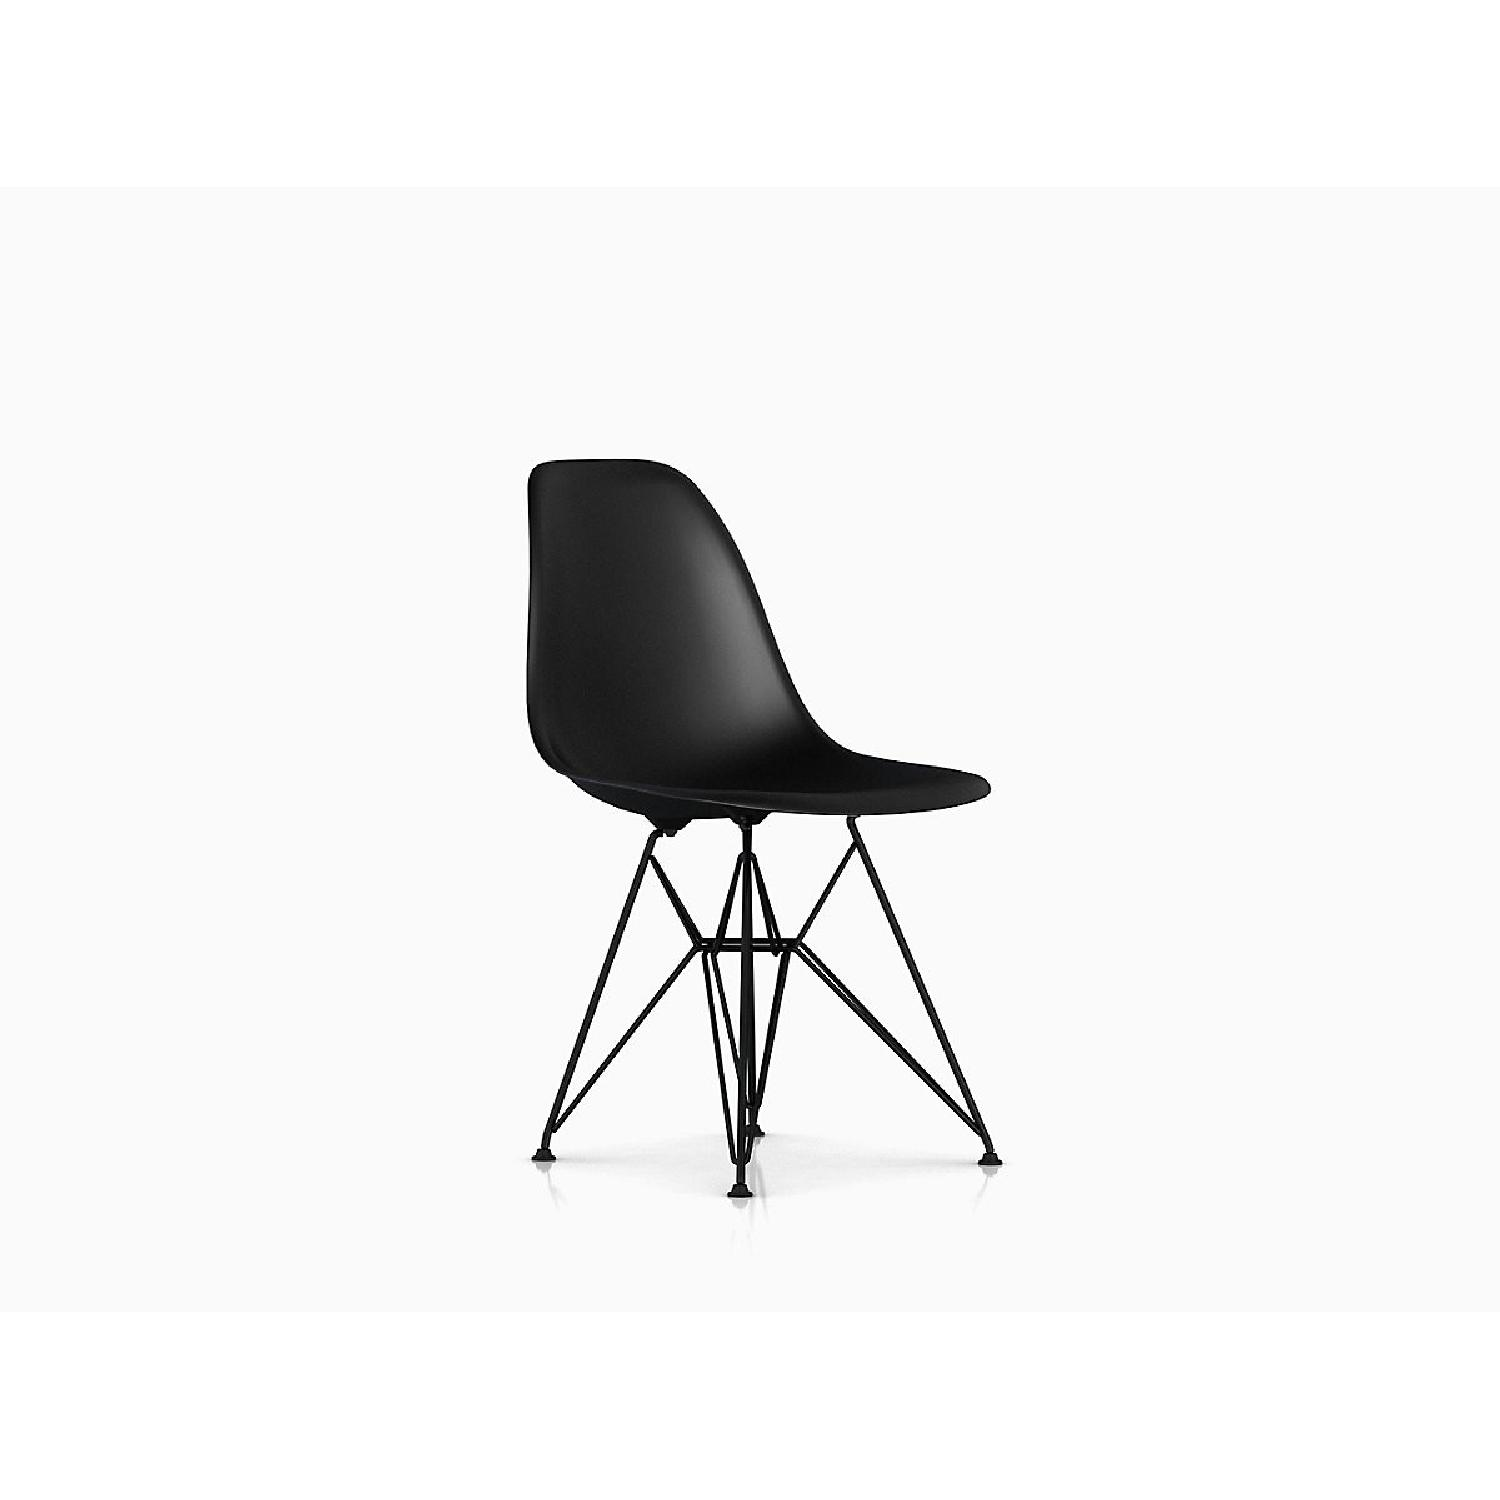 Eames Molded Plastic Black Wire Base Side Chairs - image-7